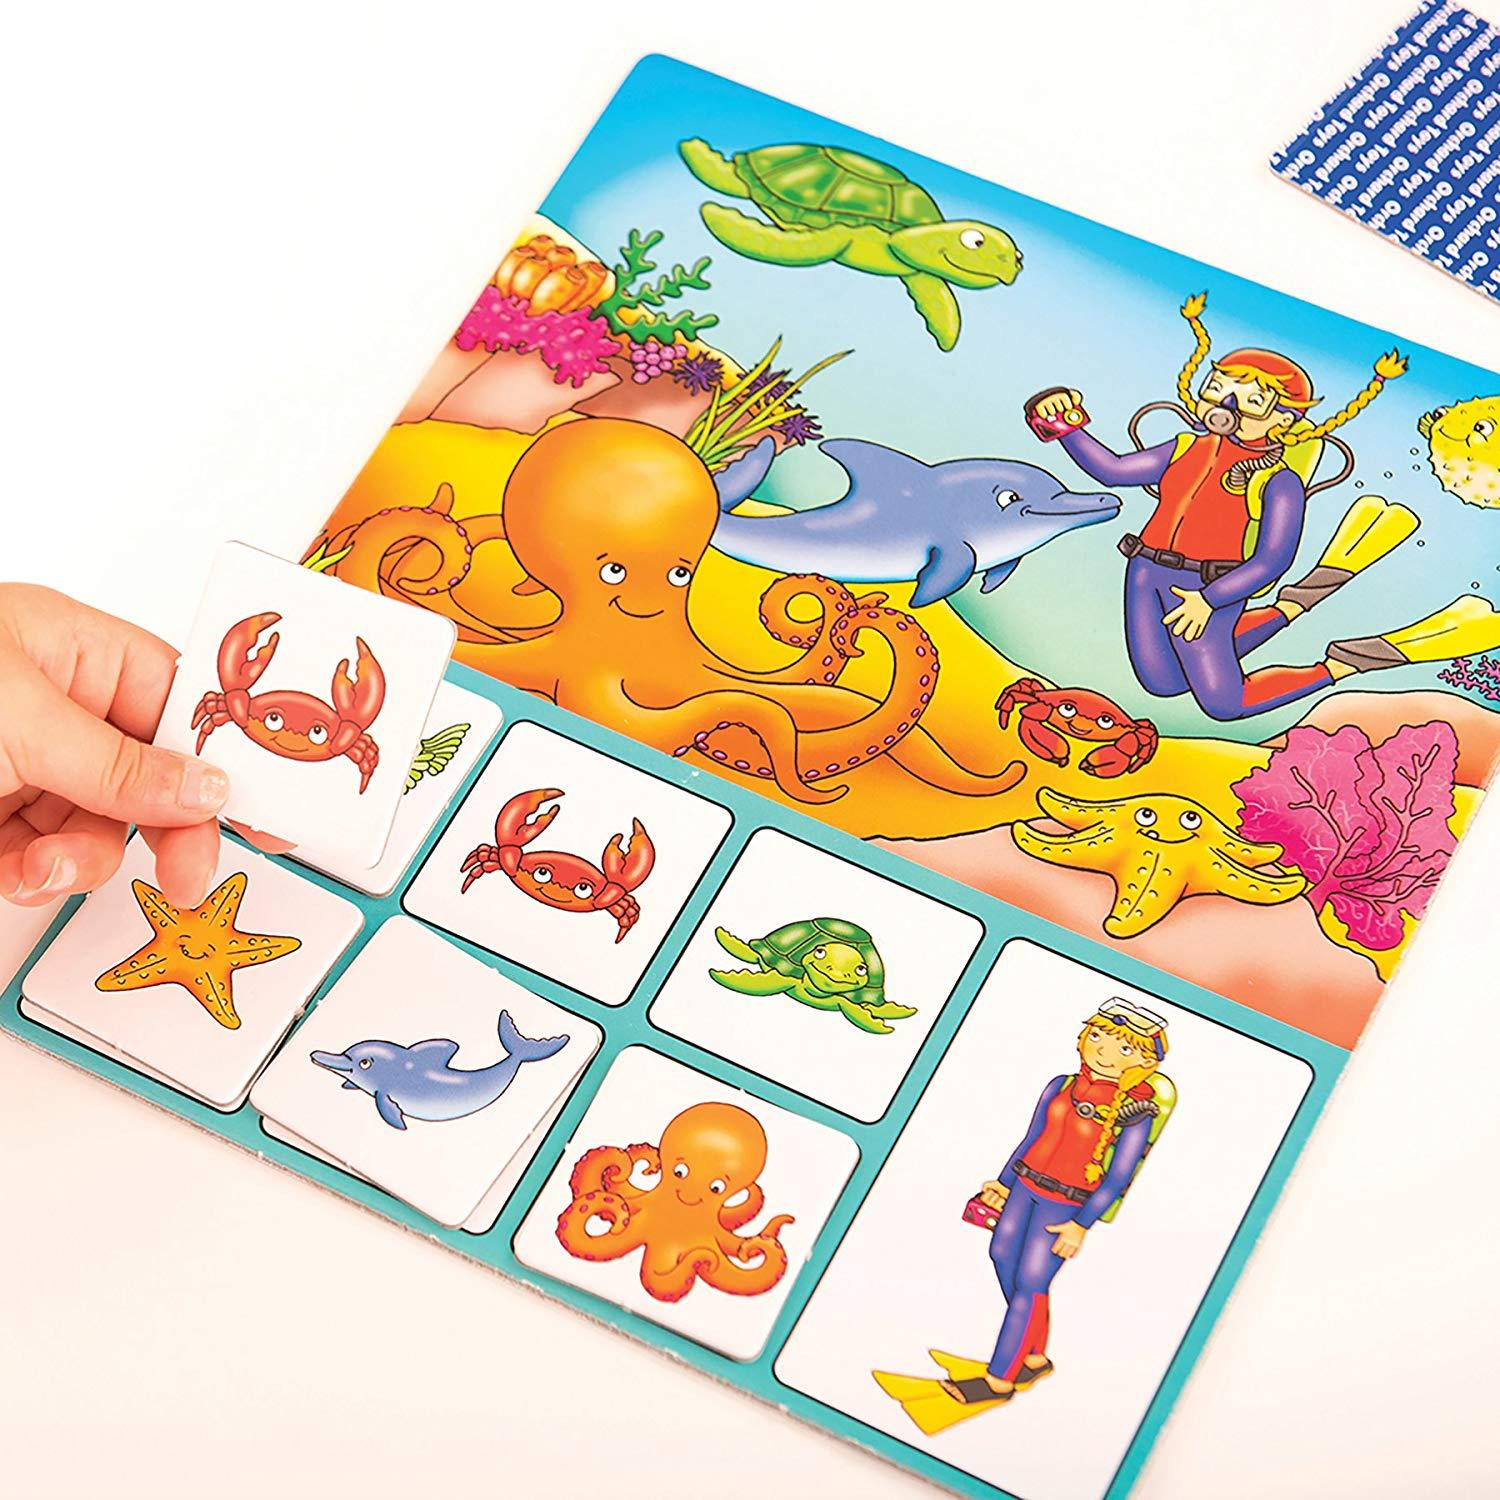 thumbnail 325 - Orchard Toys Educational Games For Kids Choose Game From Drop Down Menu